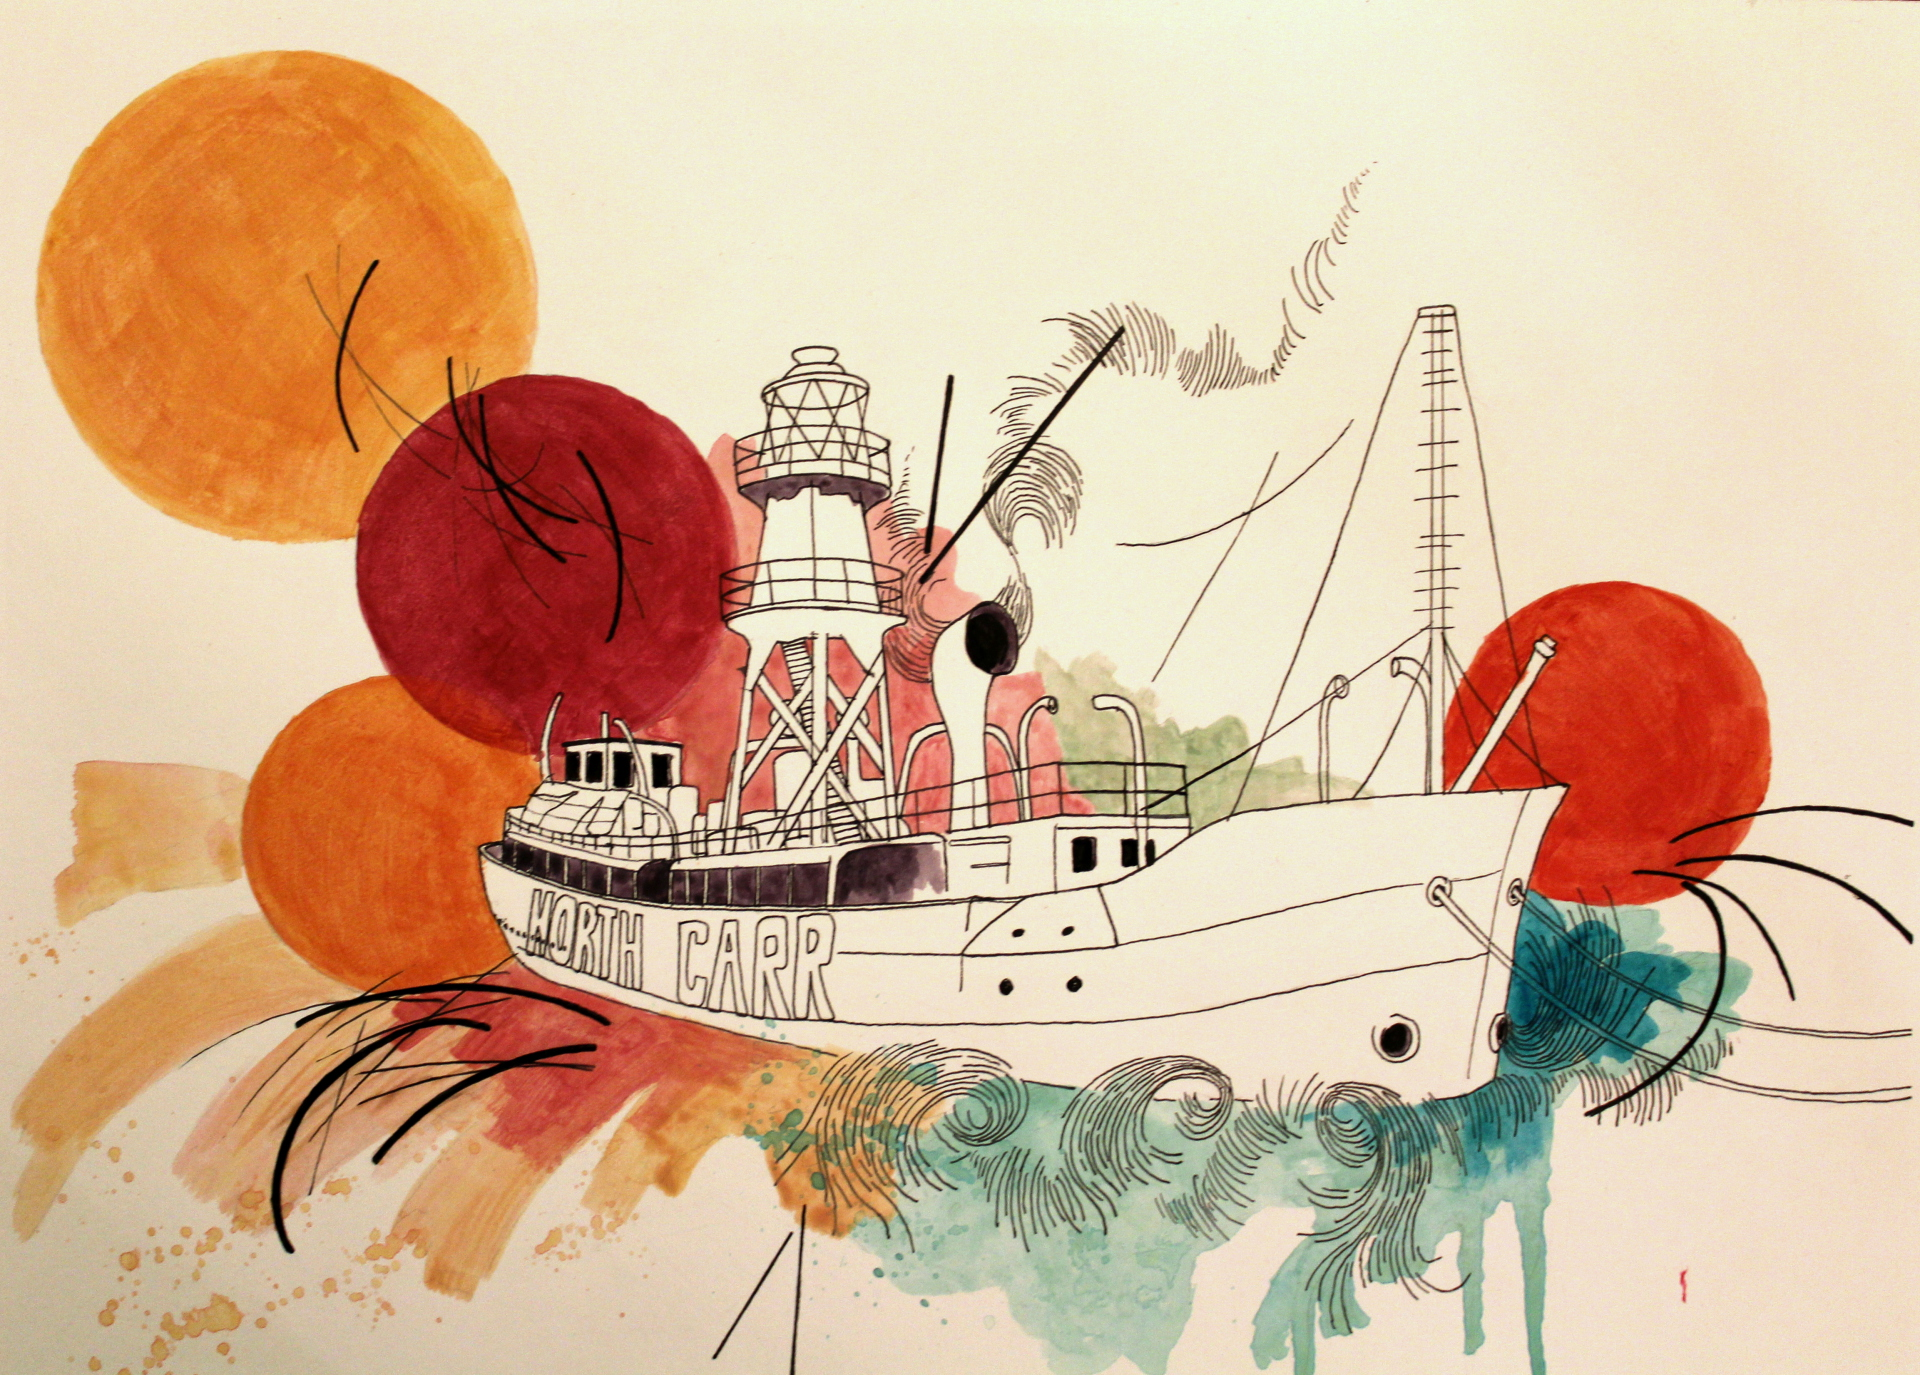 'North Carr Lightship' Acrylic and pen on paper.